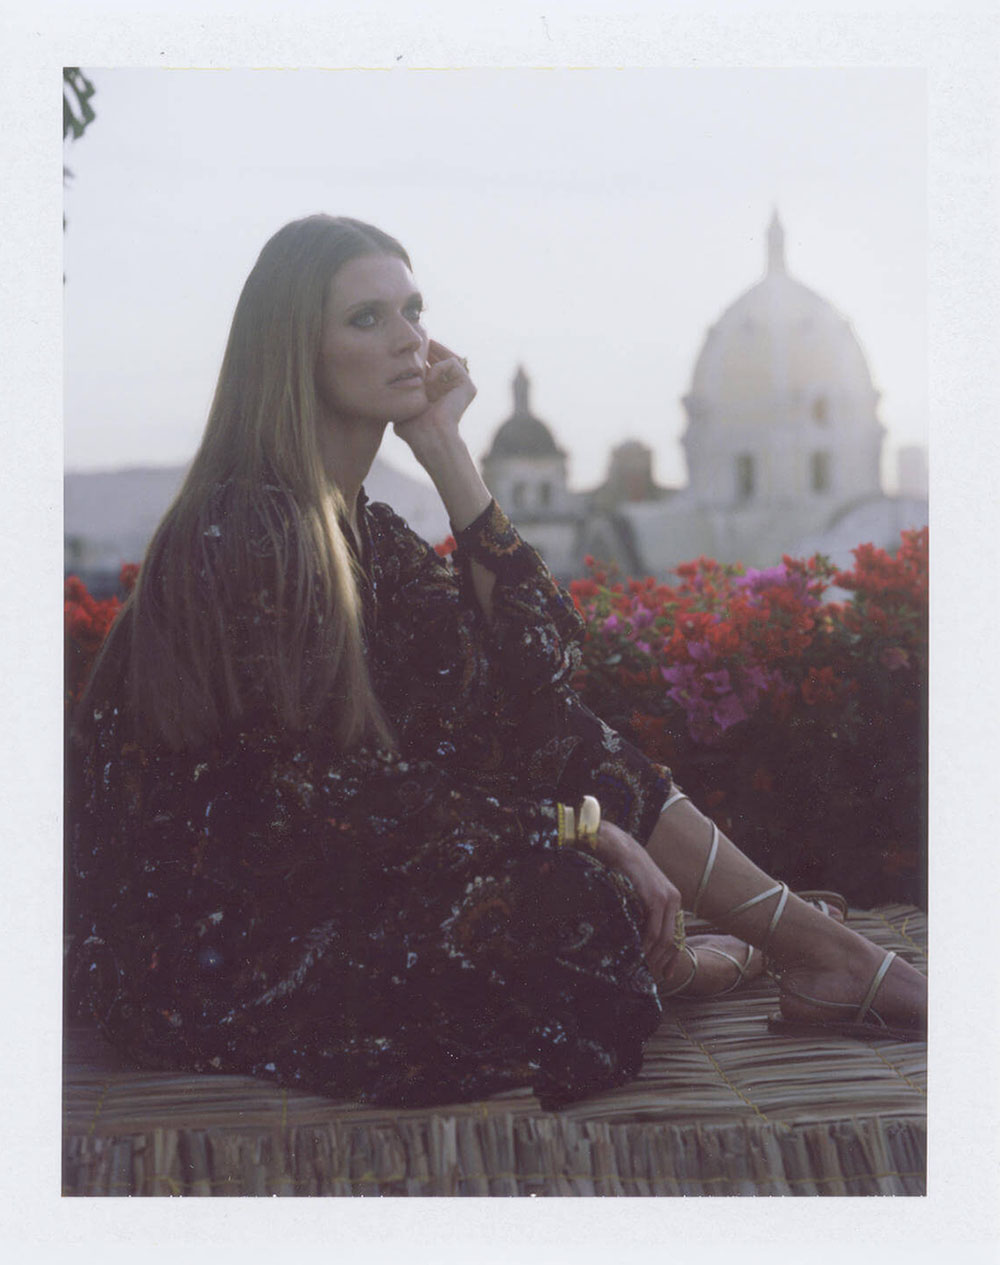 Małgosia Bela by Ethan James Green for WSJ. Magazine March 2020